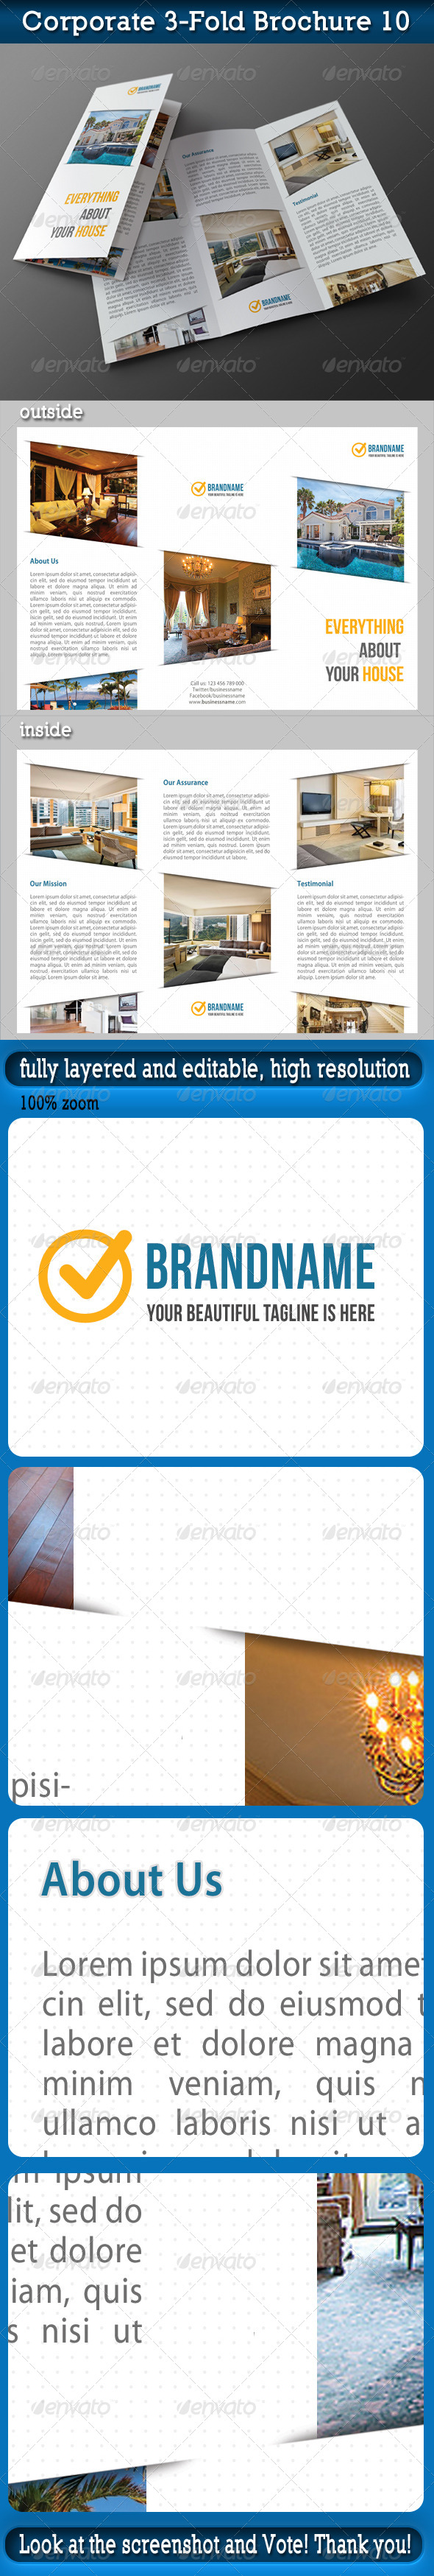 GraphicRiver Corporate 3-Fold Brochure 10 5148871